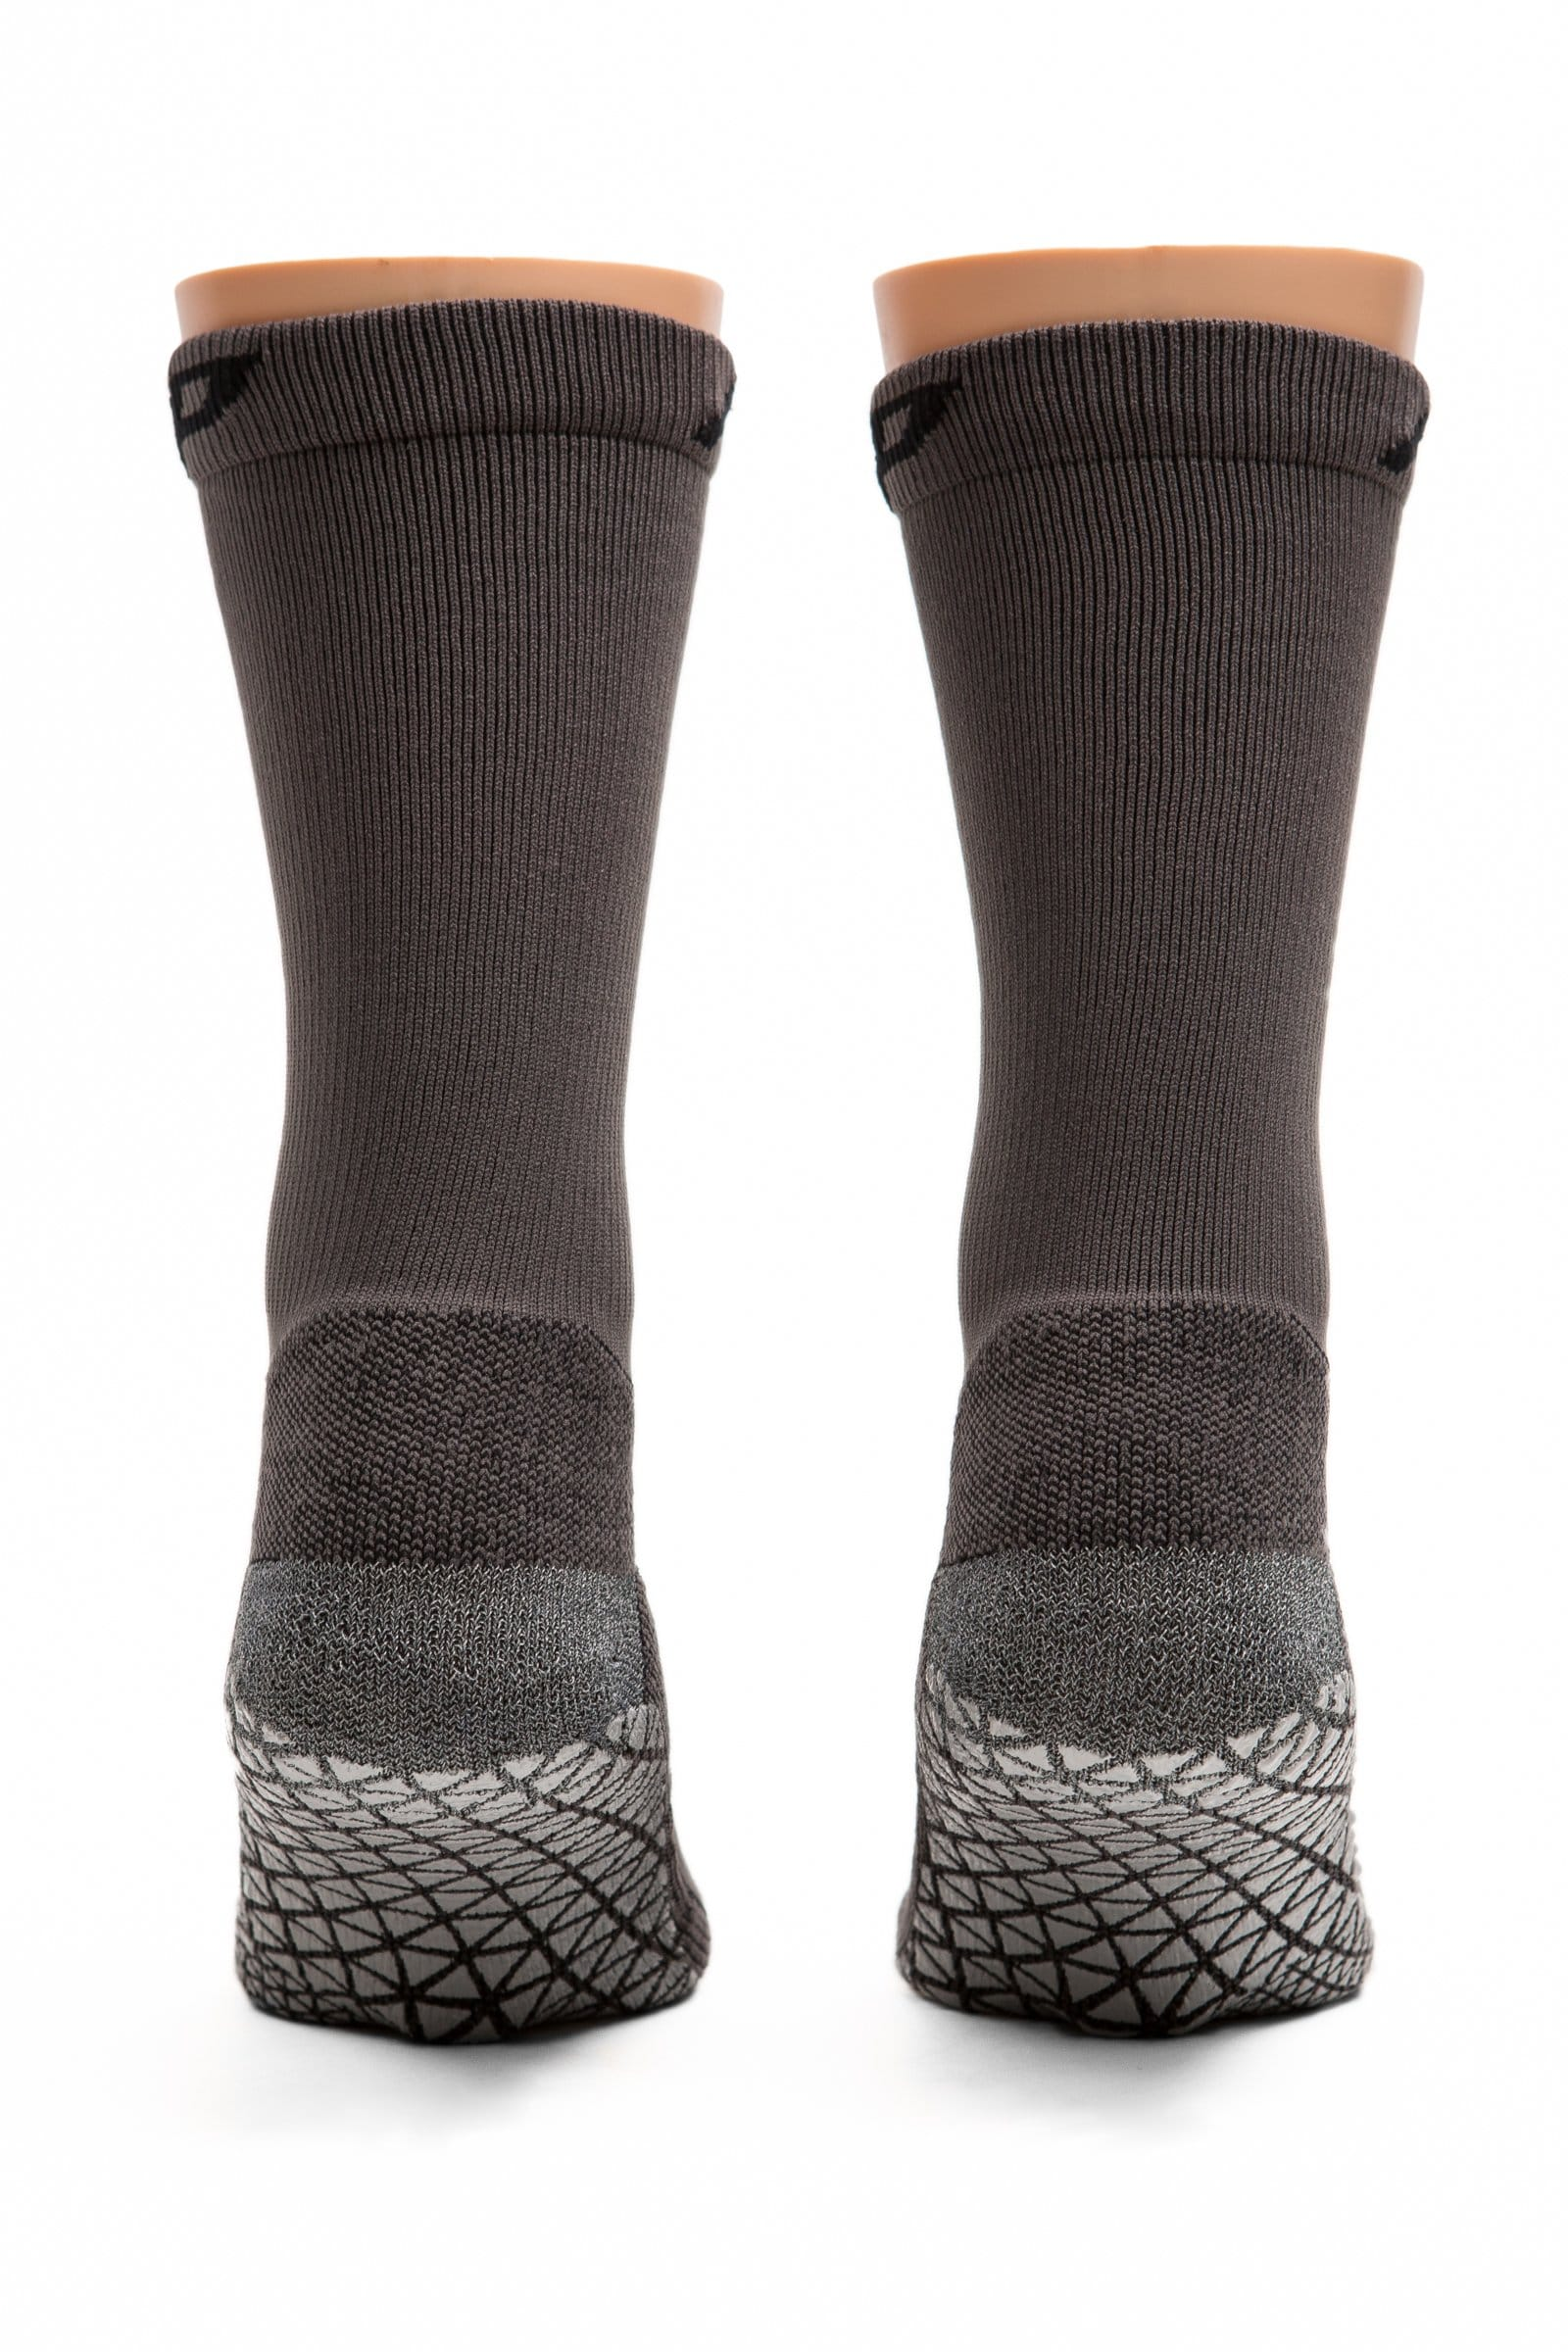 Pedestal 4.0 Crew Grip Sock in Gray - Great for Deadlifting and Powerlifting